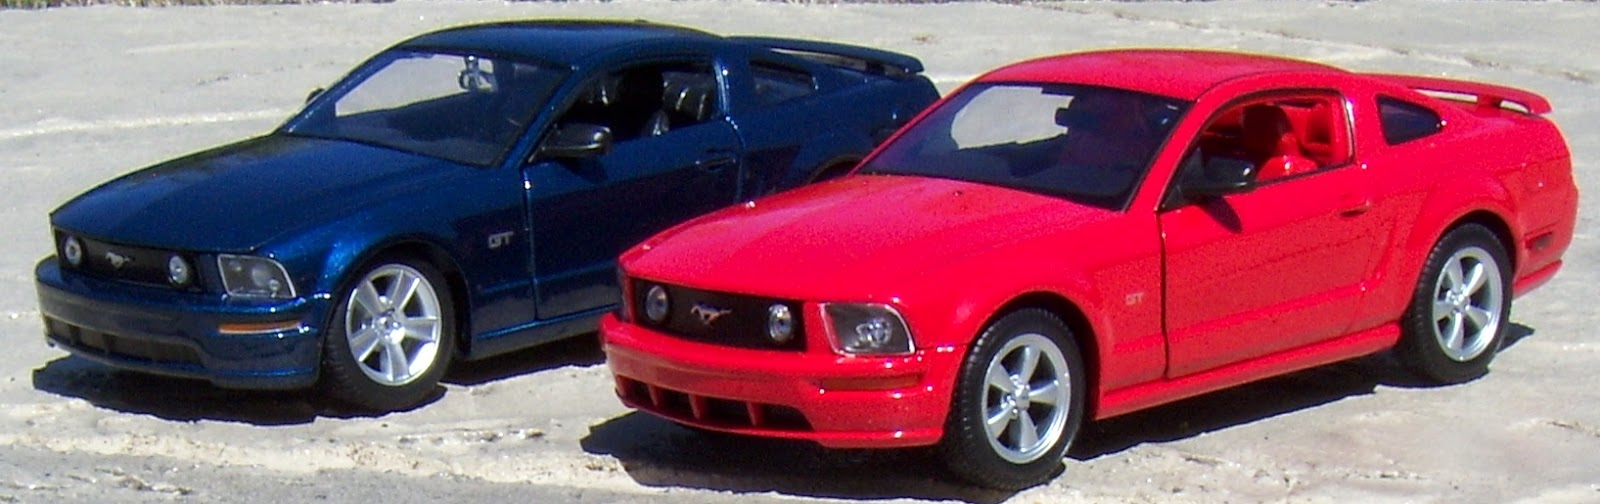 Welly 1 24 2005 ford mustang gt and maisto 1 24 2006 ford mustang gt